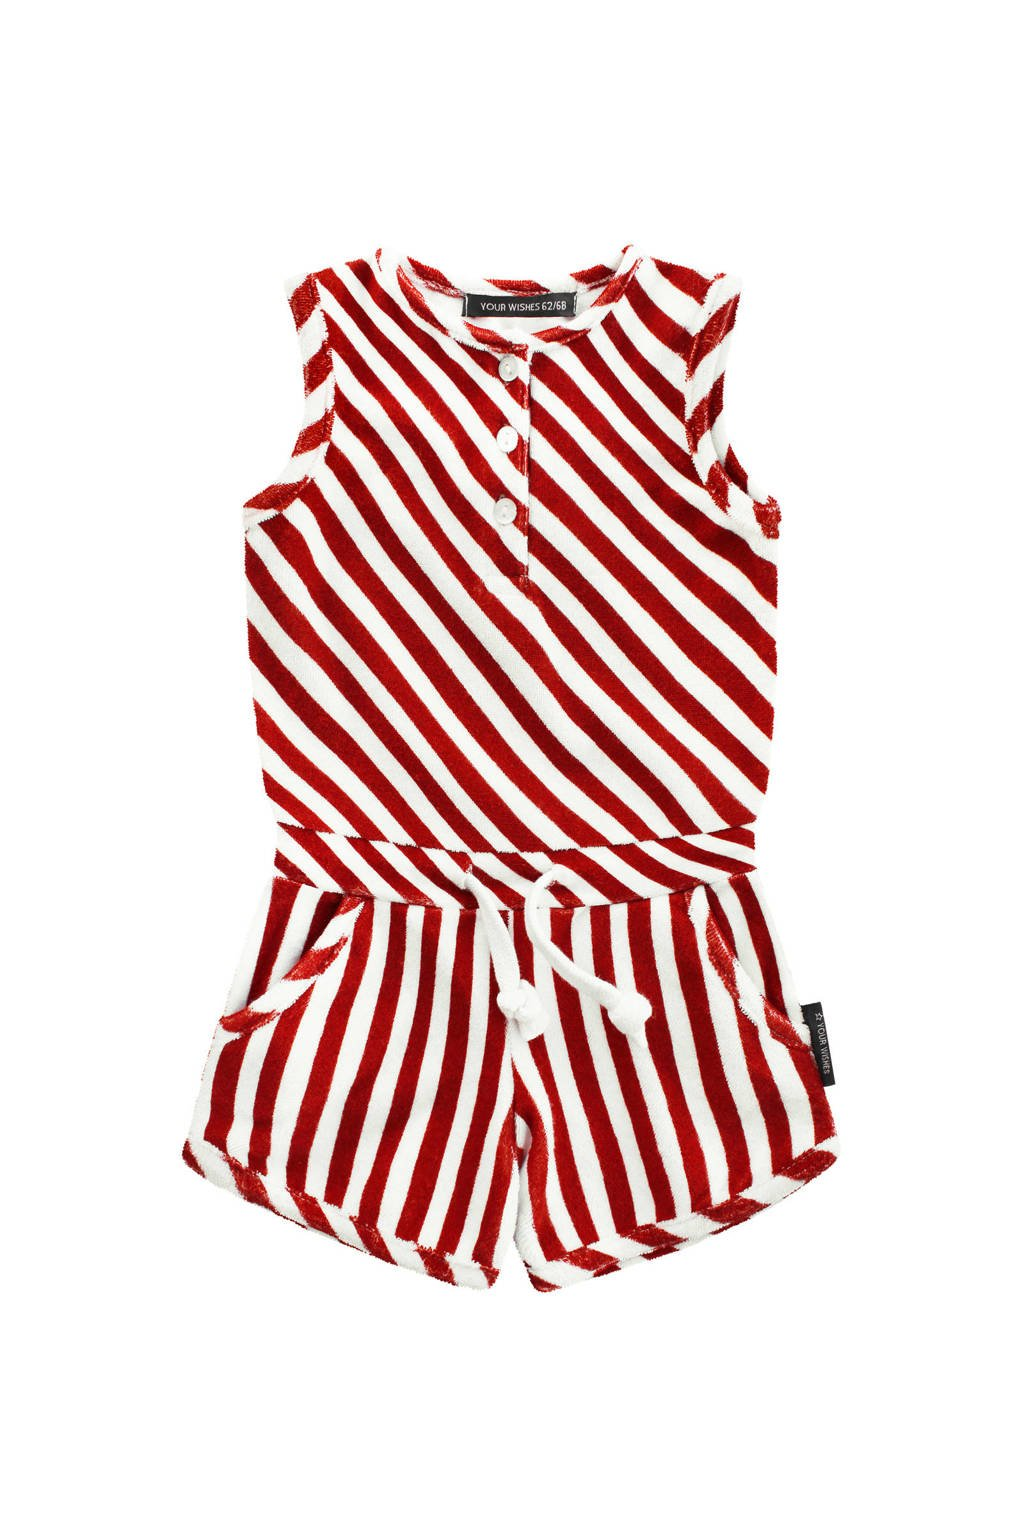 Your Wishes gestreepte jumpsuit Red Stripes rood/wit, Rood/wit